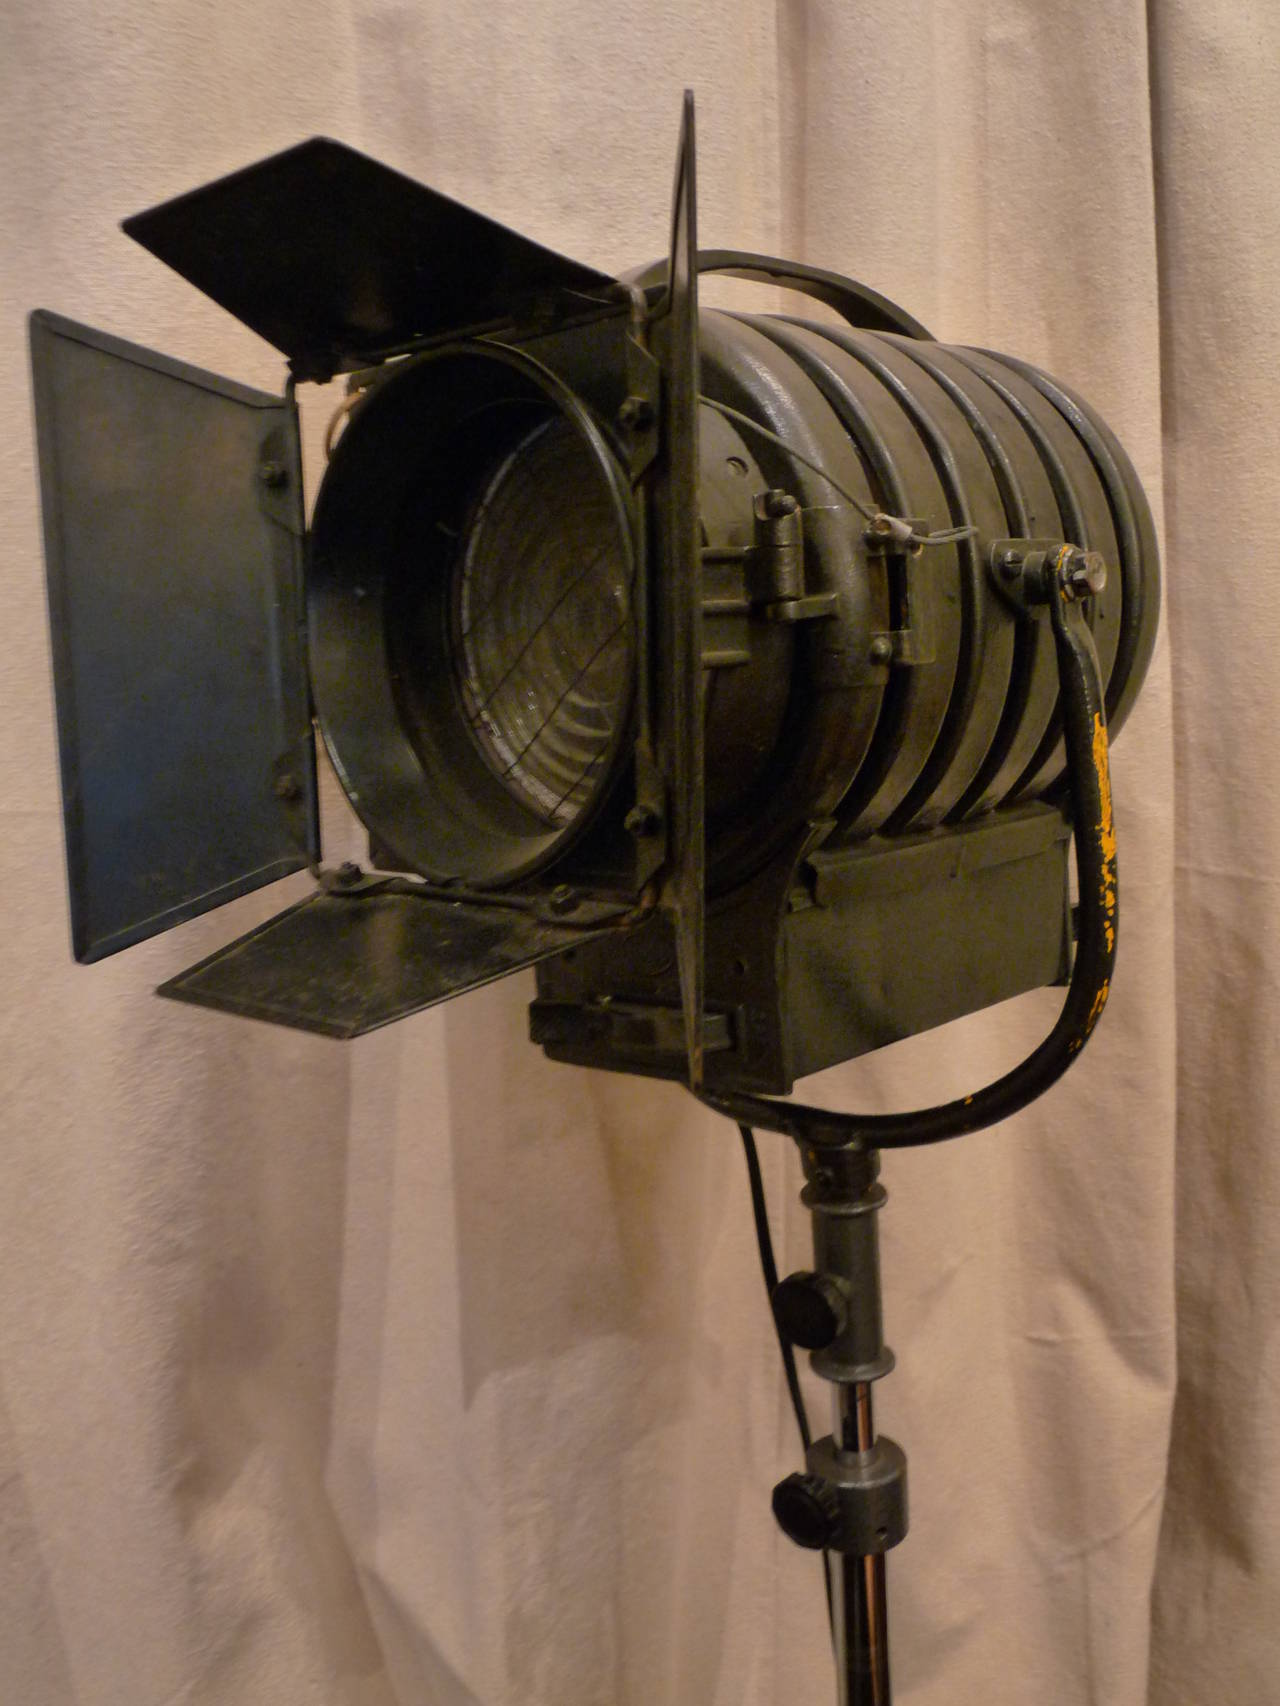 London theatre lamp for sale at 1stdibs for The lamp light theater